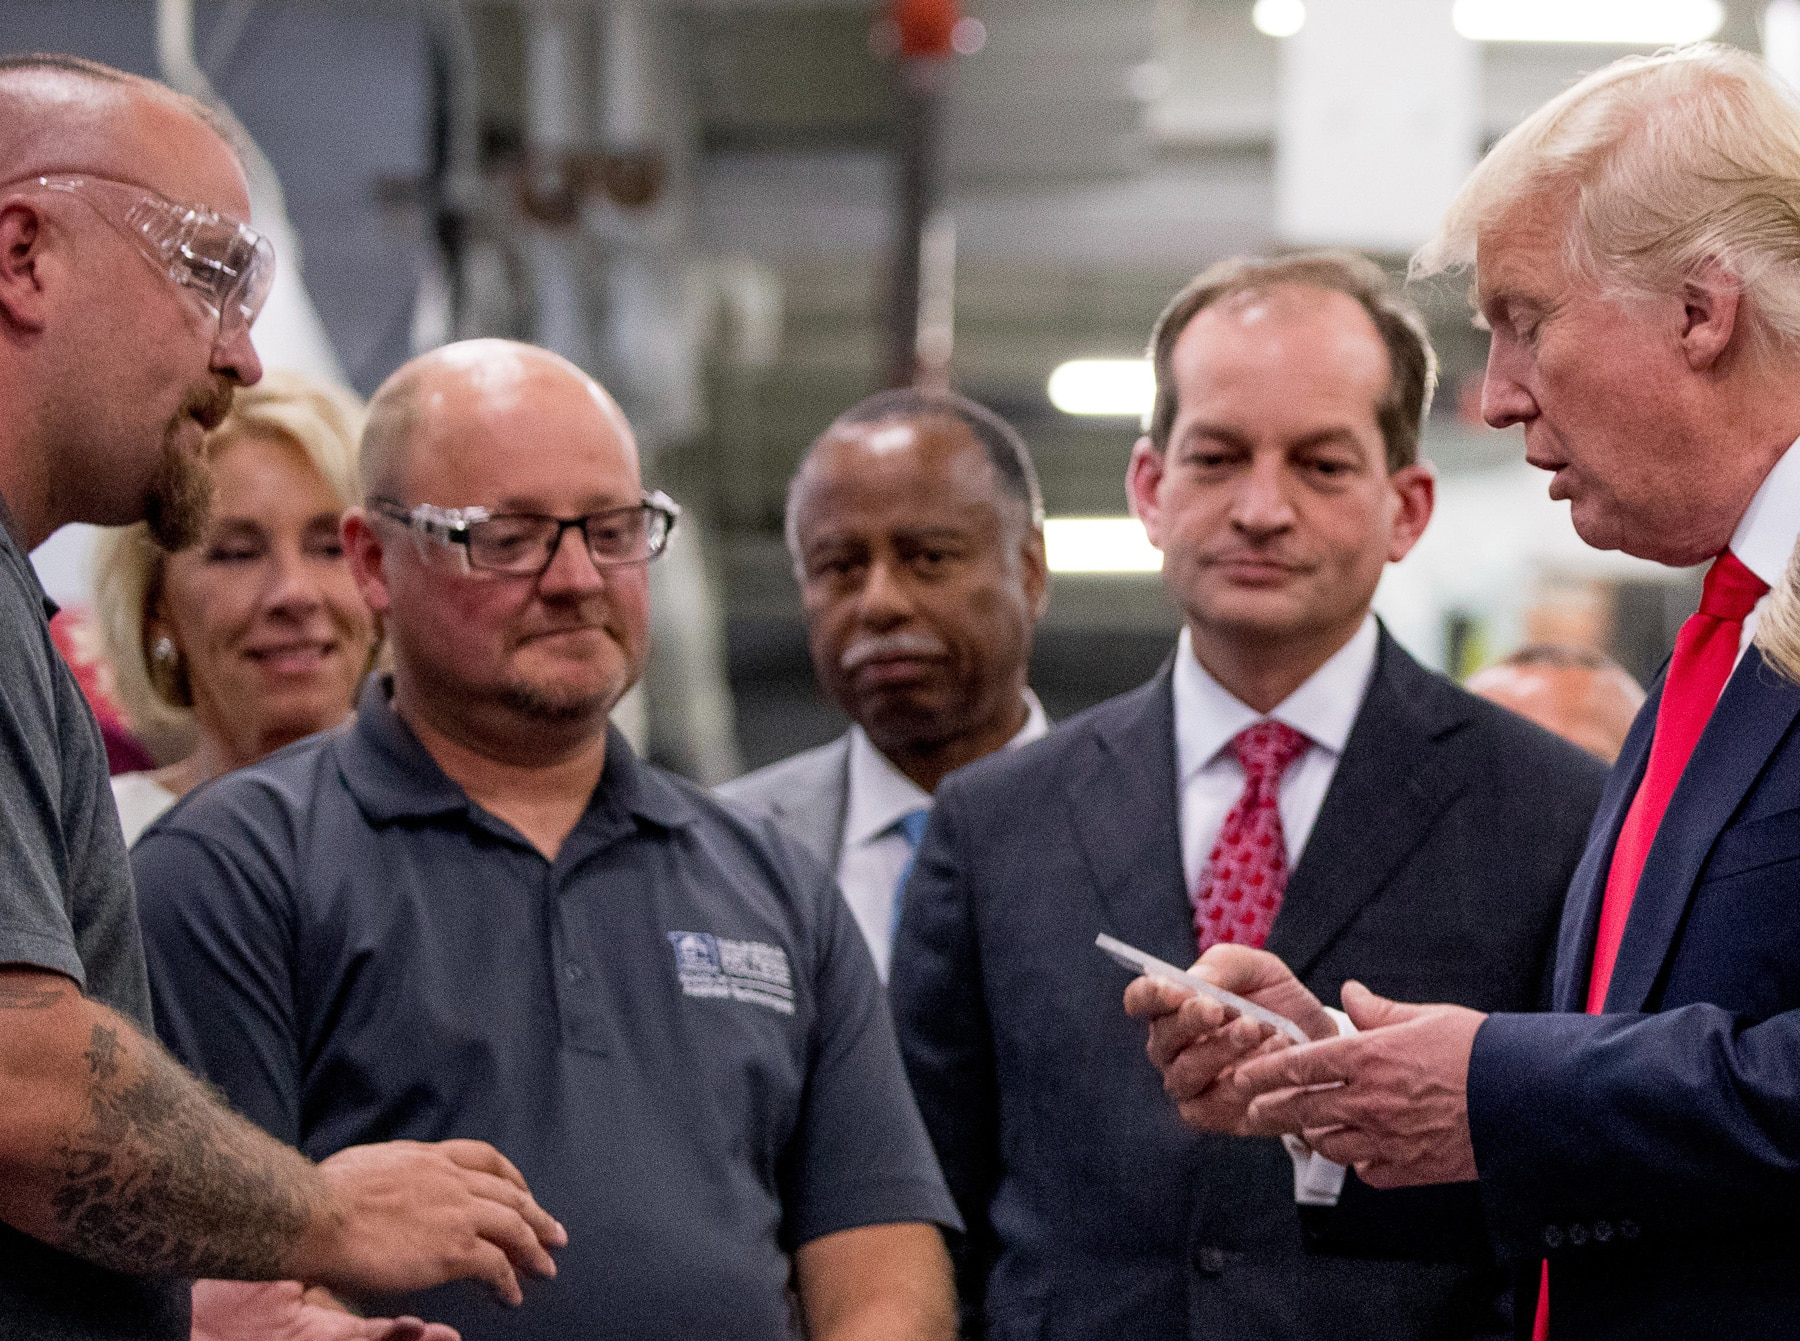 President Trump meeting with men in a factory setting (© AP Images)